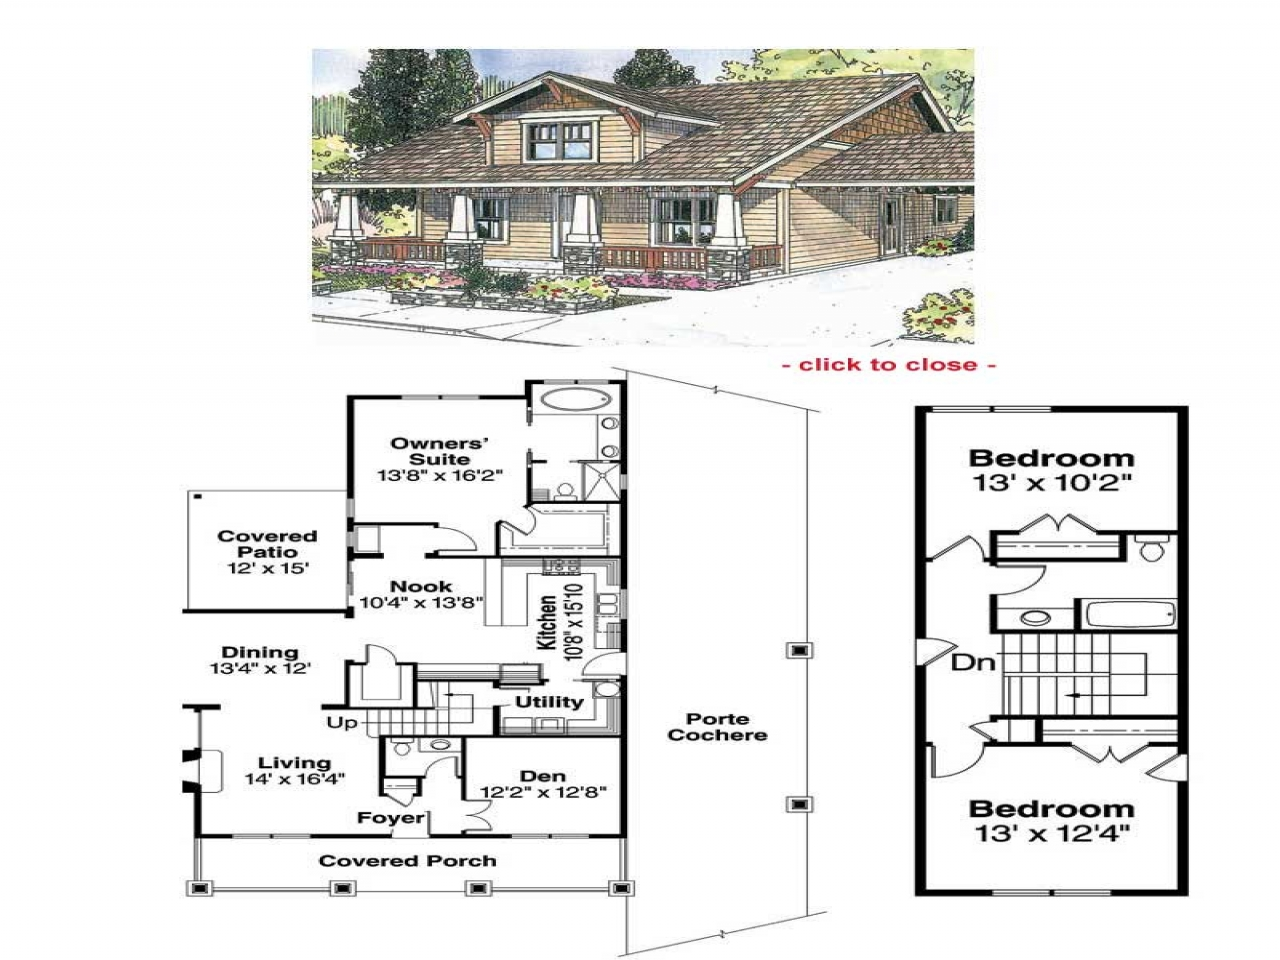 Craftsman bungalow plans find house plans vintage for Buy home plans online